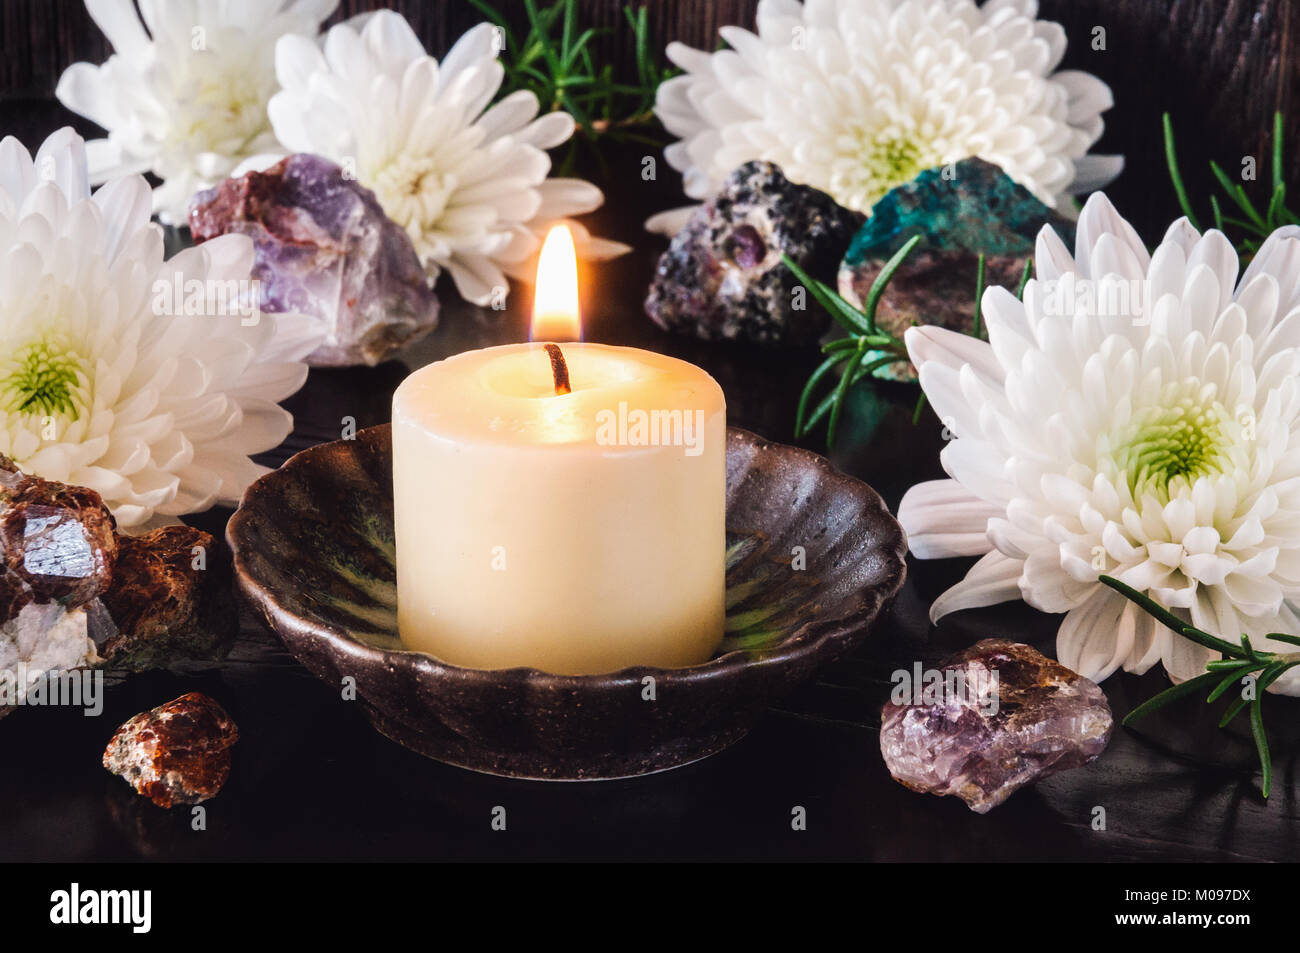 White Candle with White Chrysanthemum Flowers and Garnet, Amethyst, Ruby and Turquoise. - Stock Image